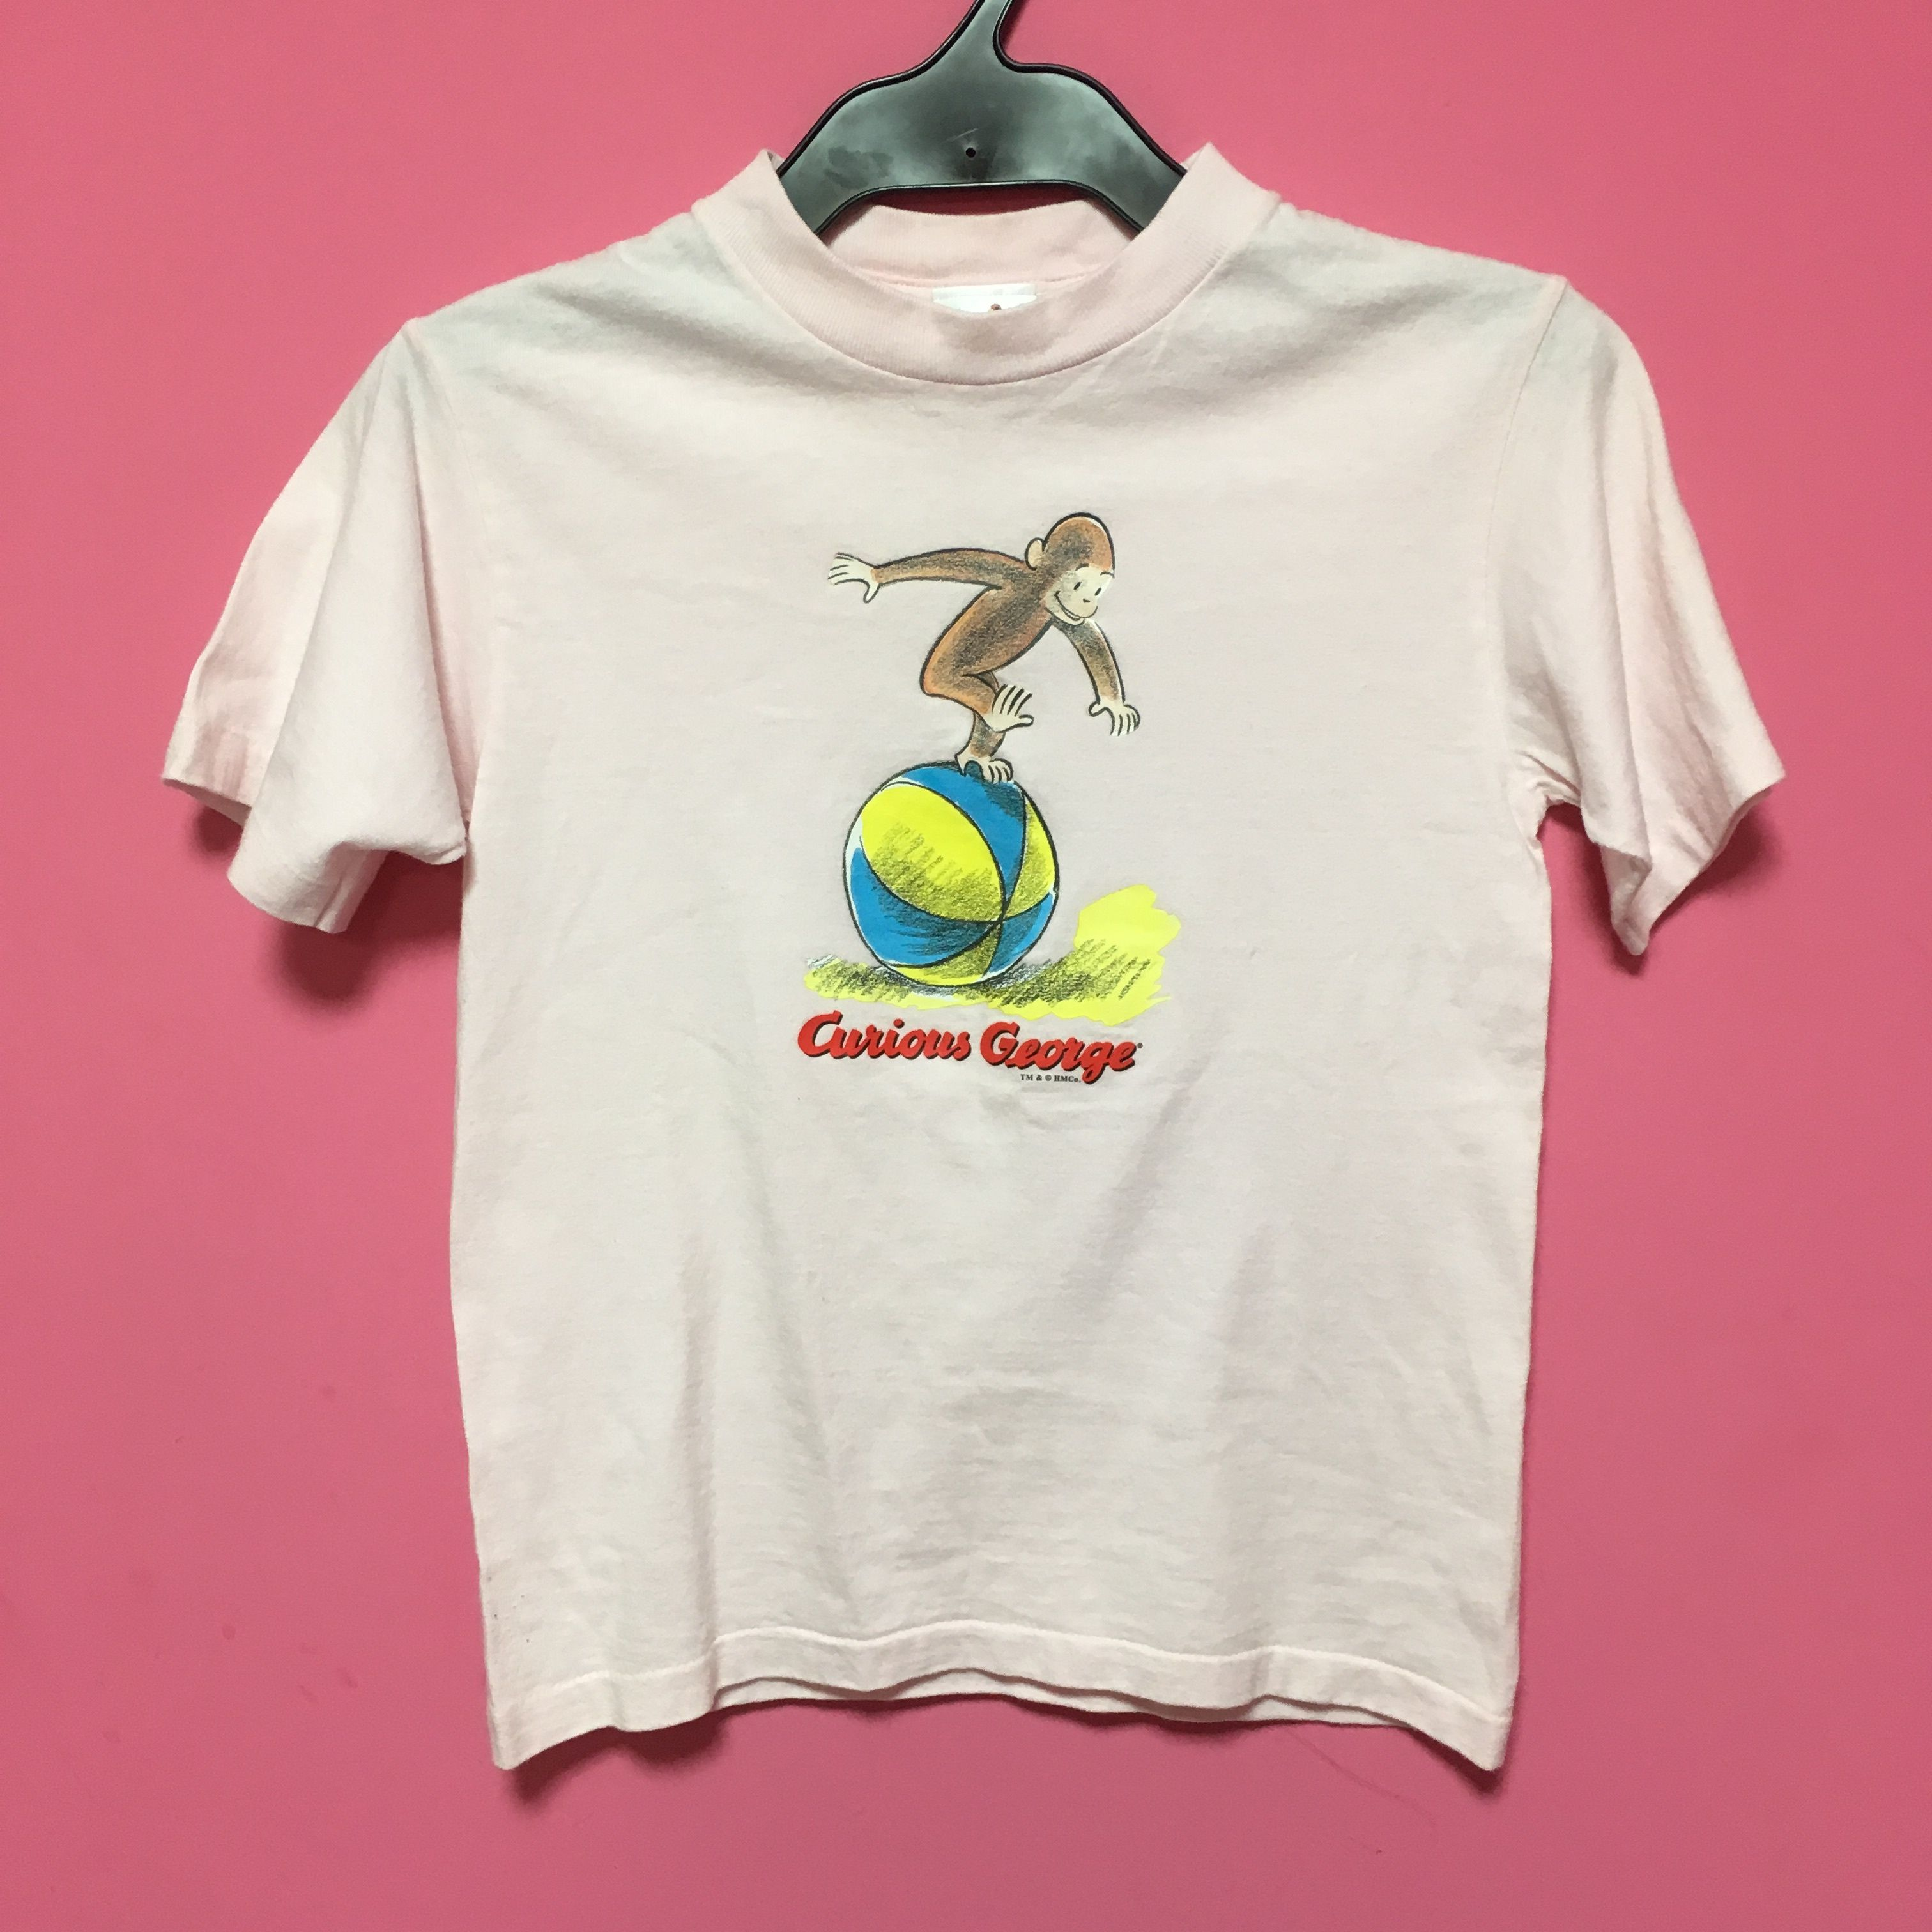 vintage おさるのジョージ Tシャツ キッズ Curious George